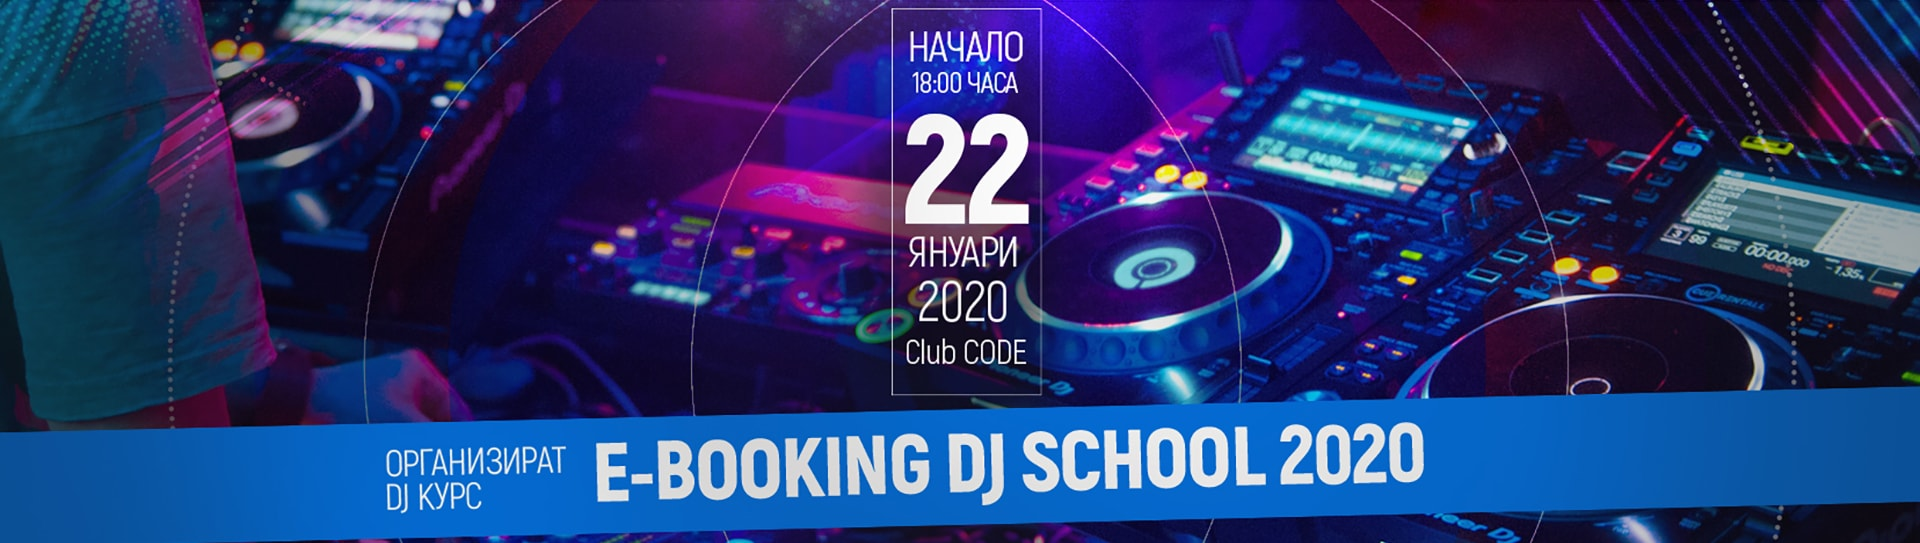 ebooking-dj-school-2020-cover